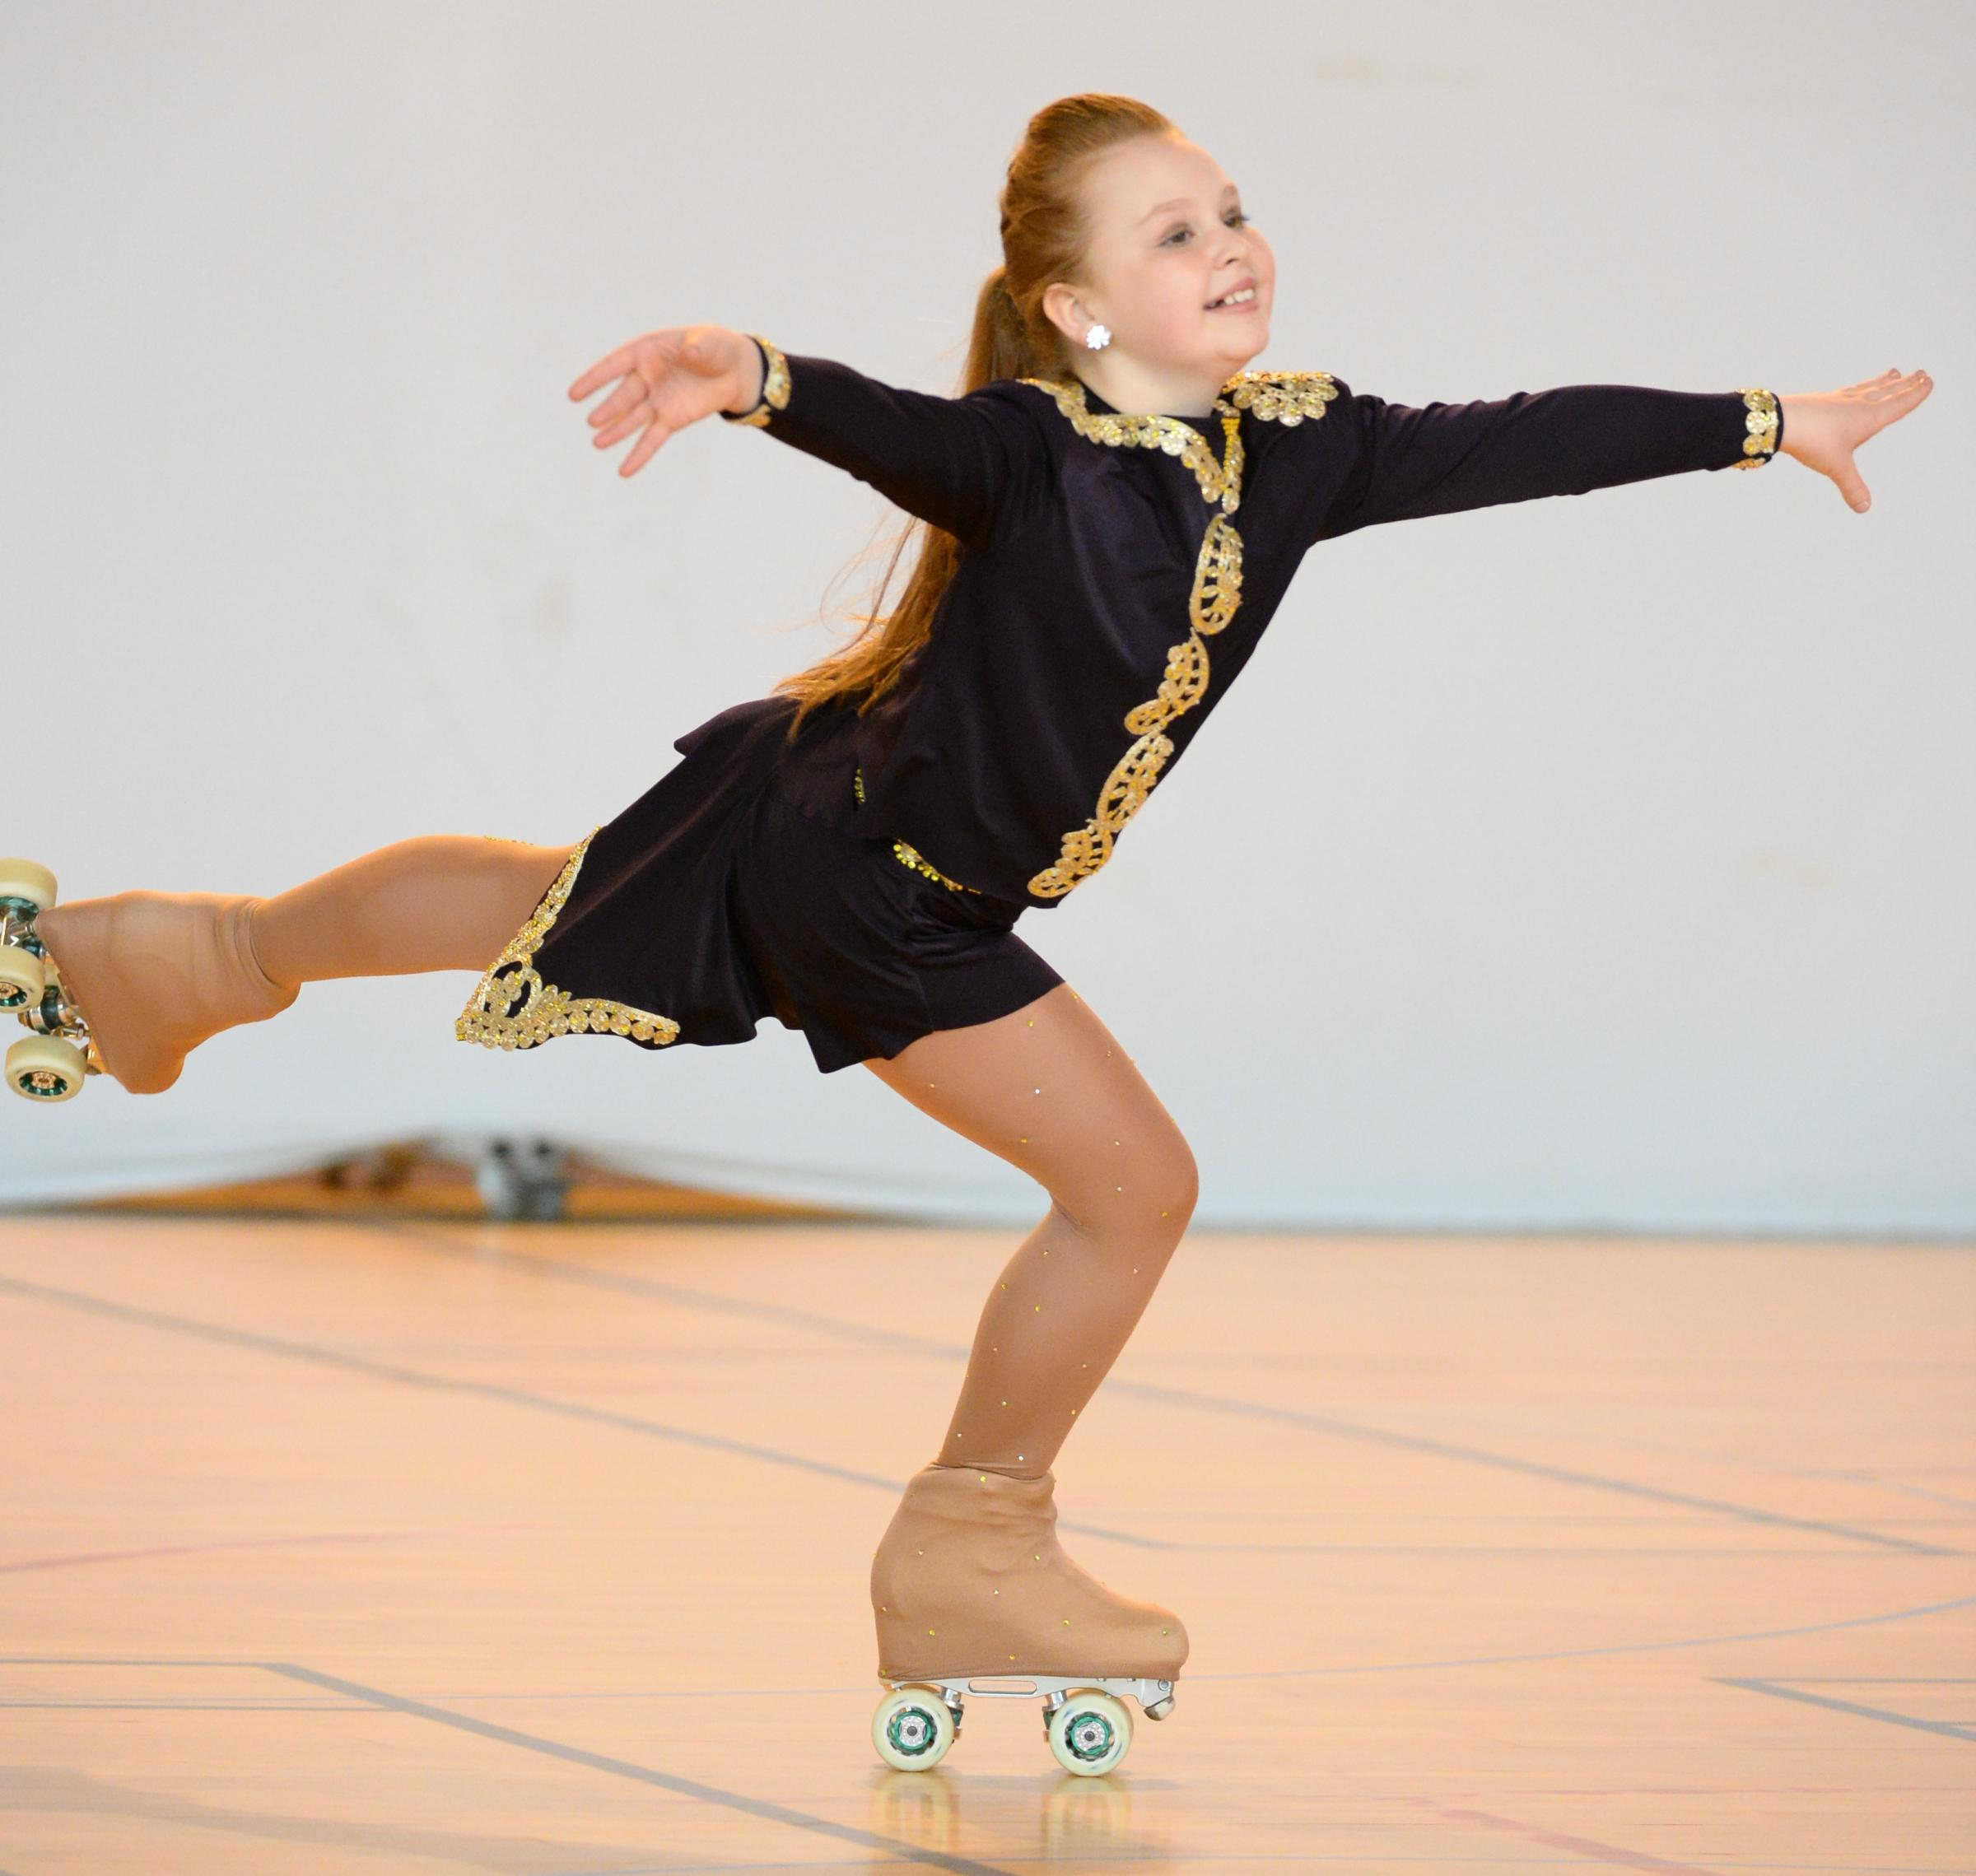 Roller skating vaughan - Roller Skating Emma Thiele On A Roll Ahead Of This Weekend S Championships From Bury Times